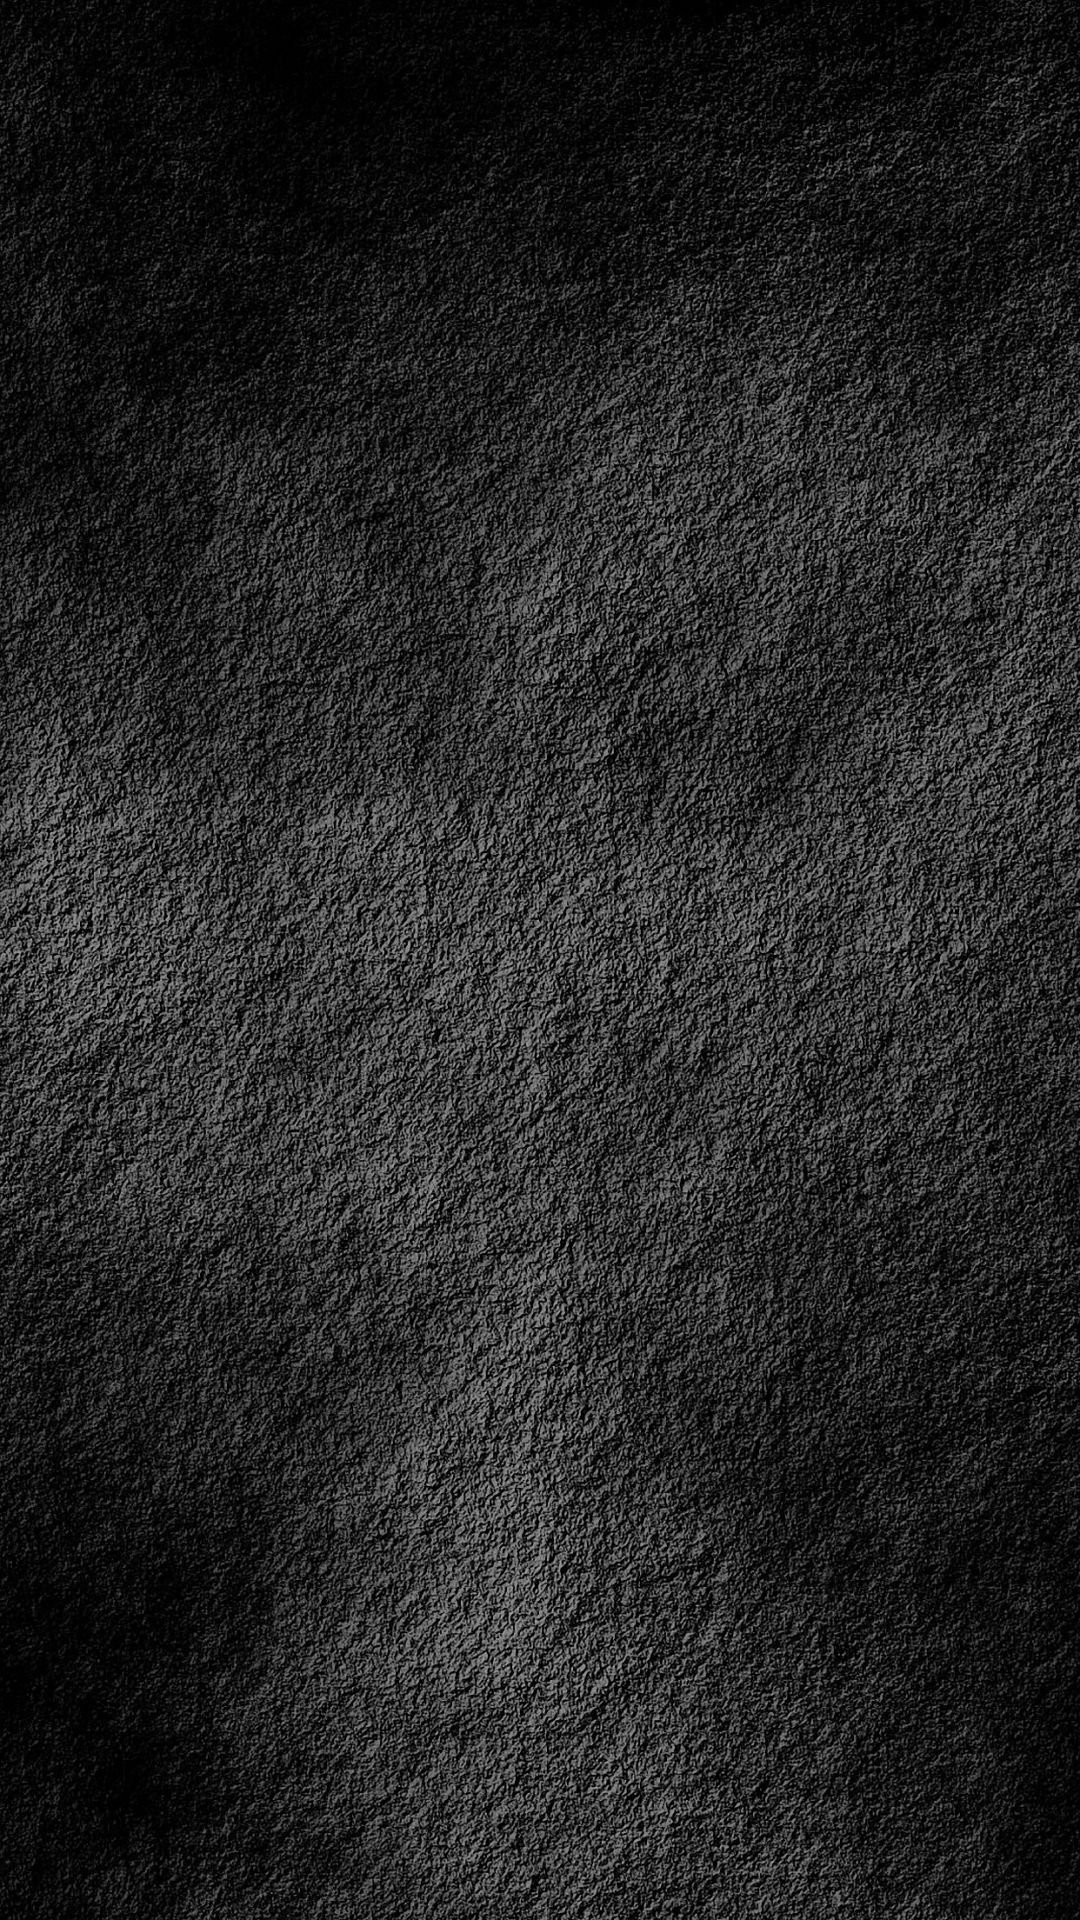 Black Abstract iPhone Wallpapers - Top Free Black Abstract ...